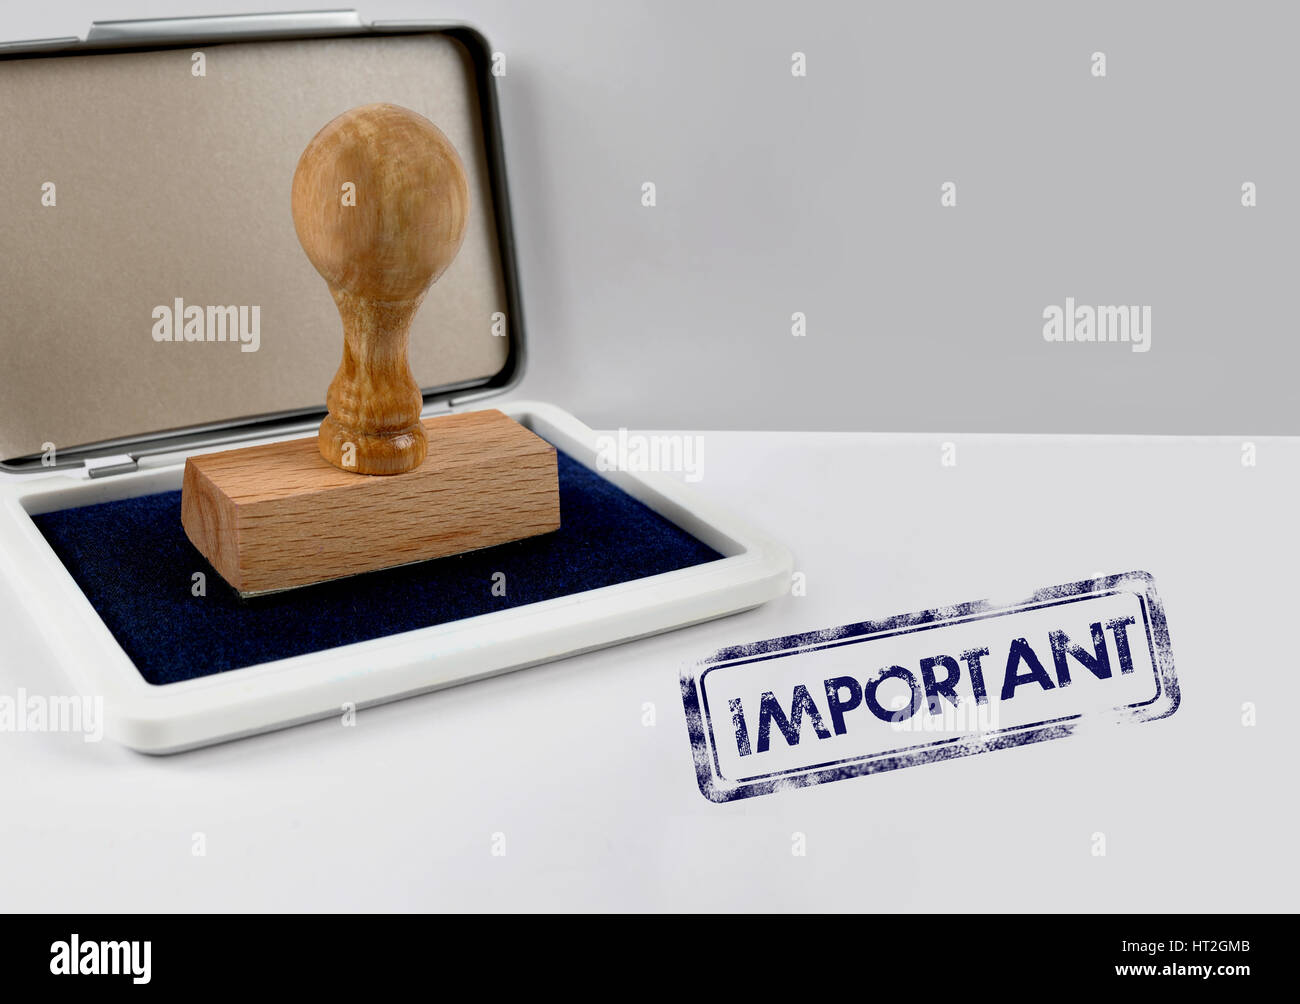 Wooden stamp on a desk IMPORTANT - Stock Image